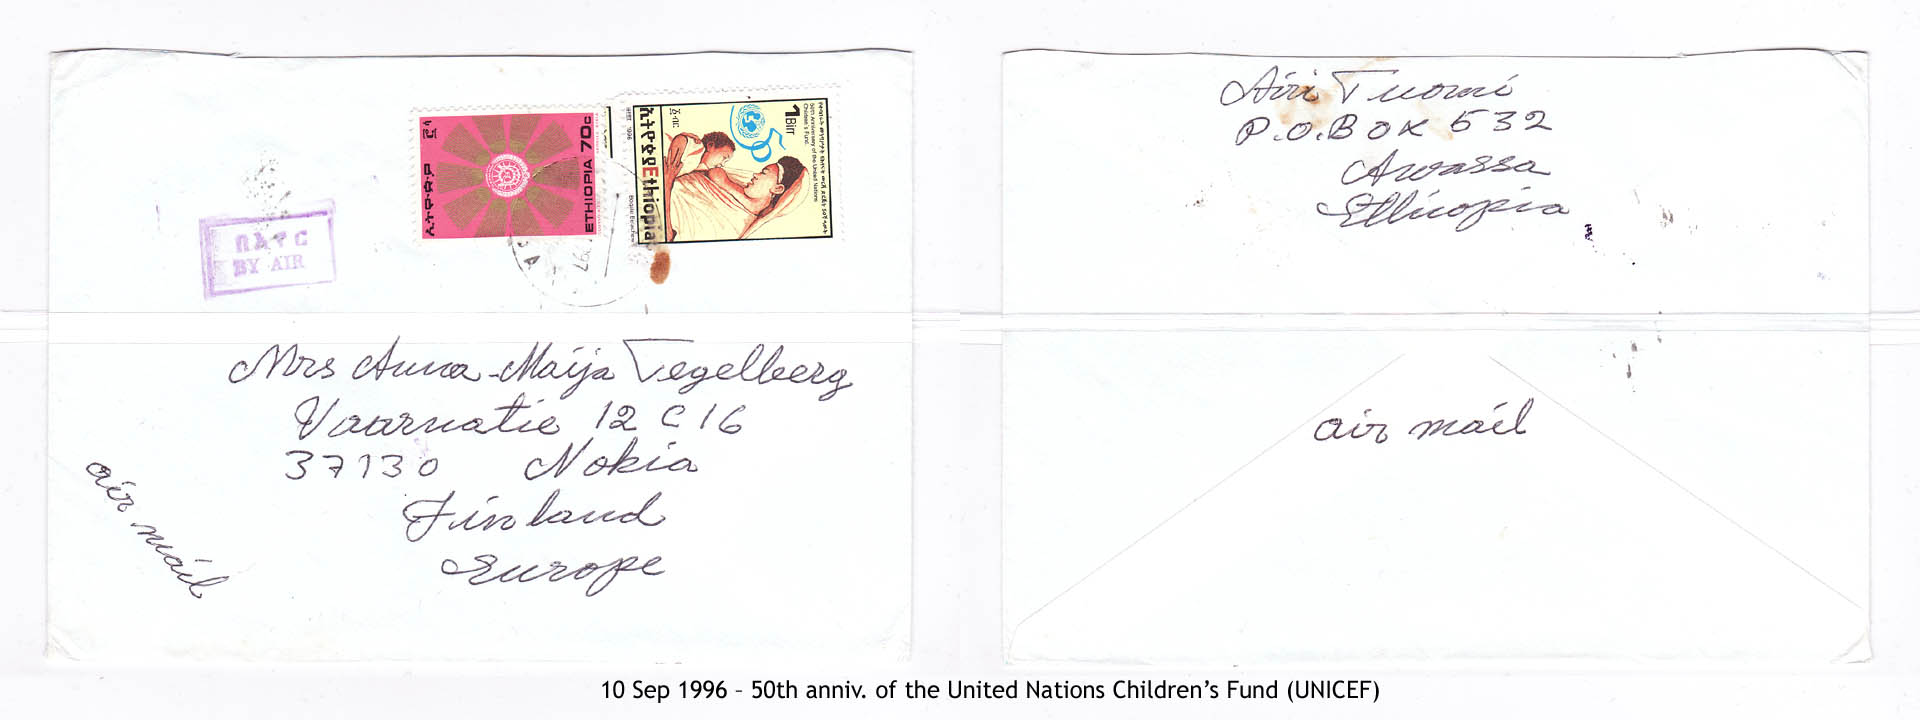 19960910 – 50th anniv. of the United Nations Children's Fund (UNICEF)